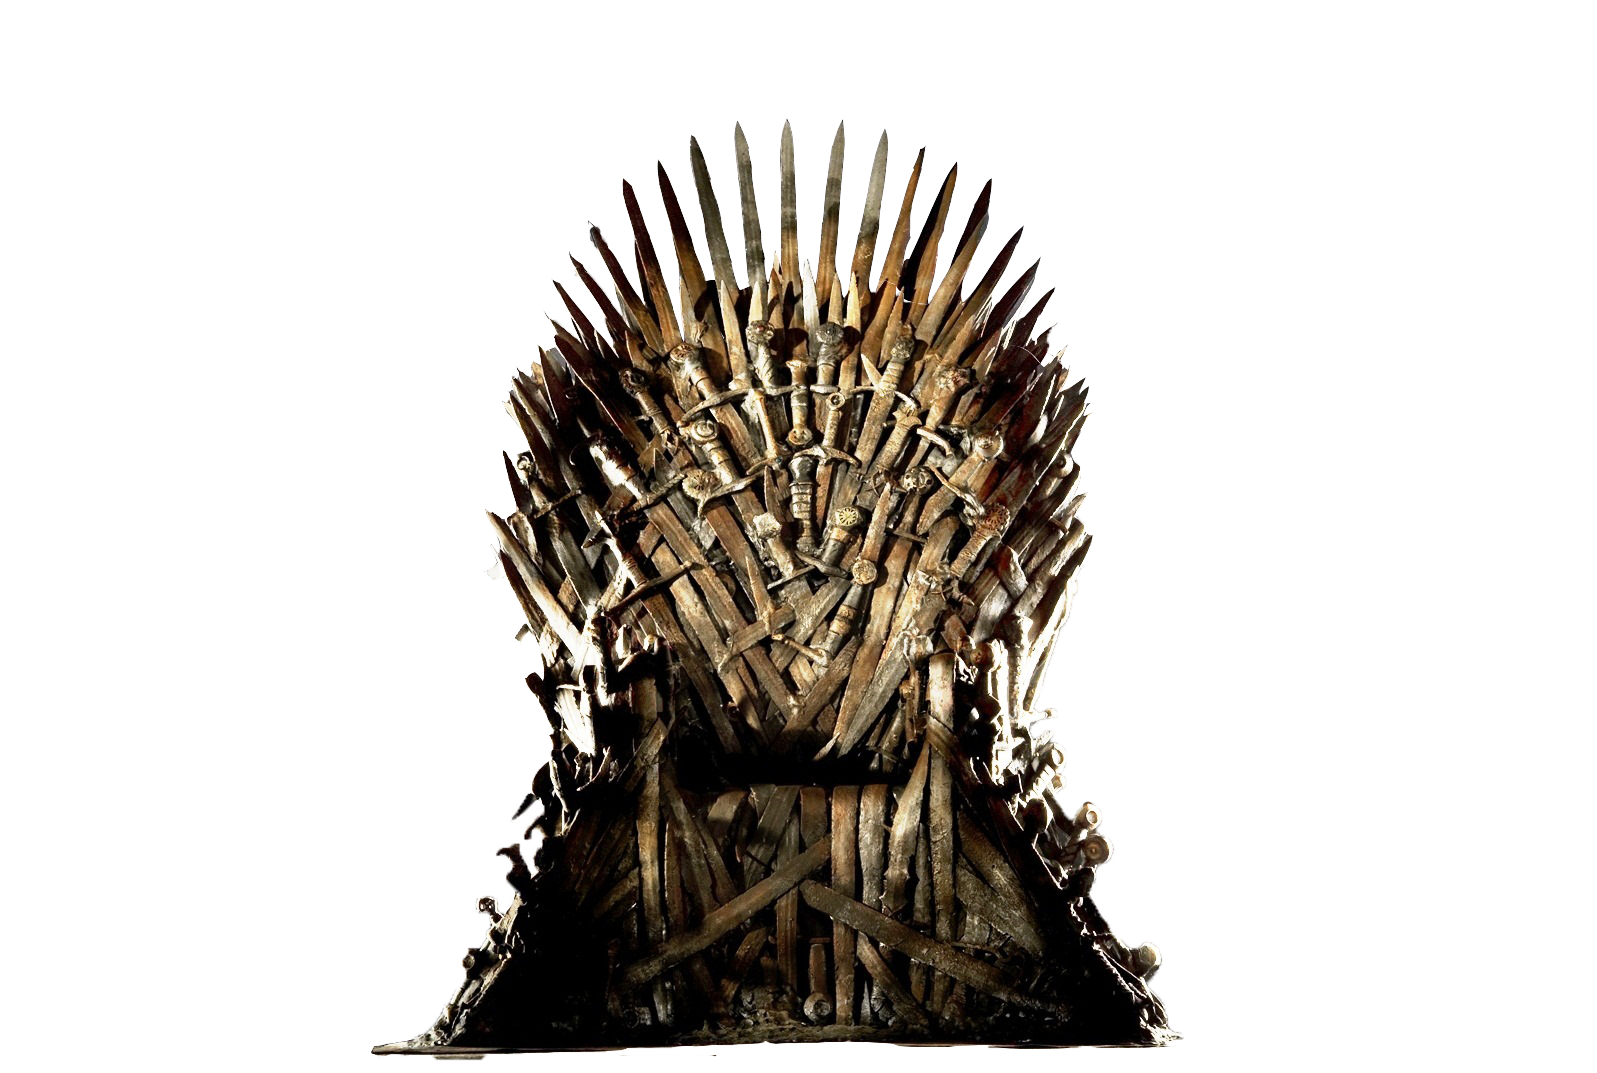 Game Of Thrones Transparent Image PNG Image